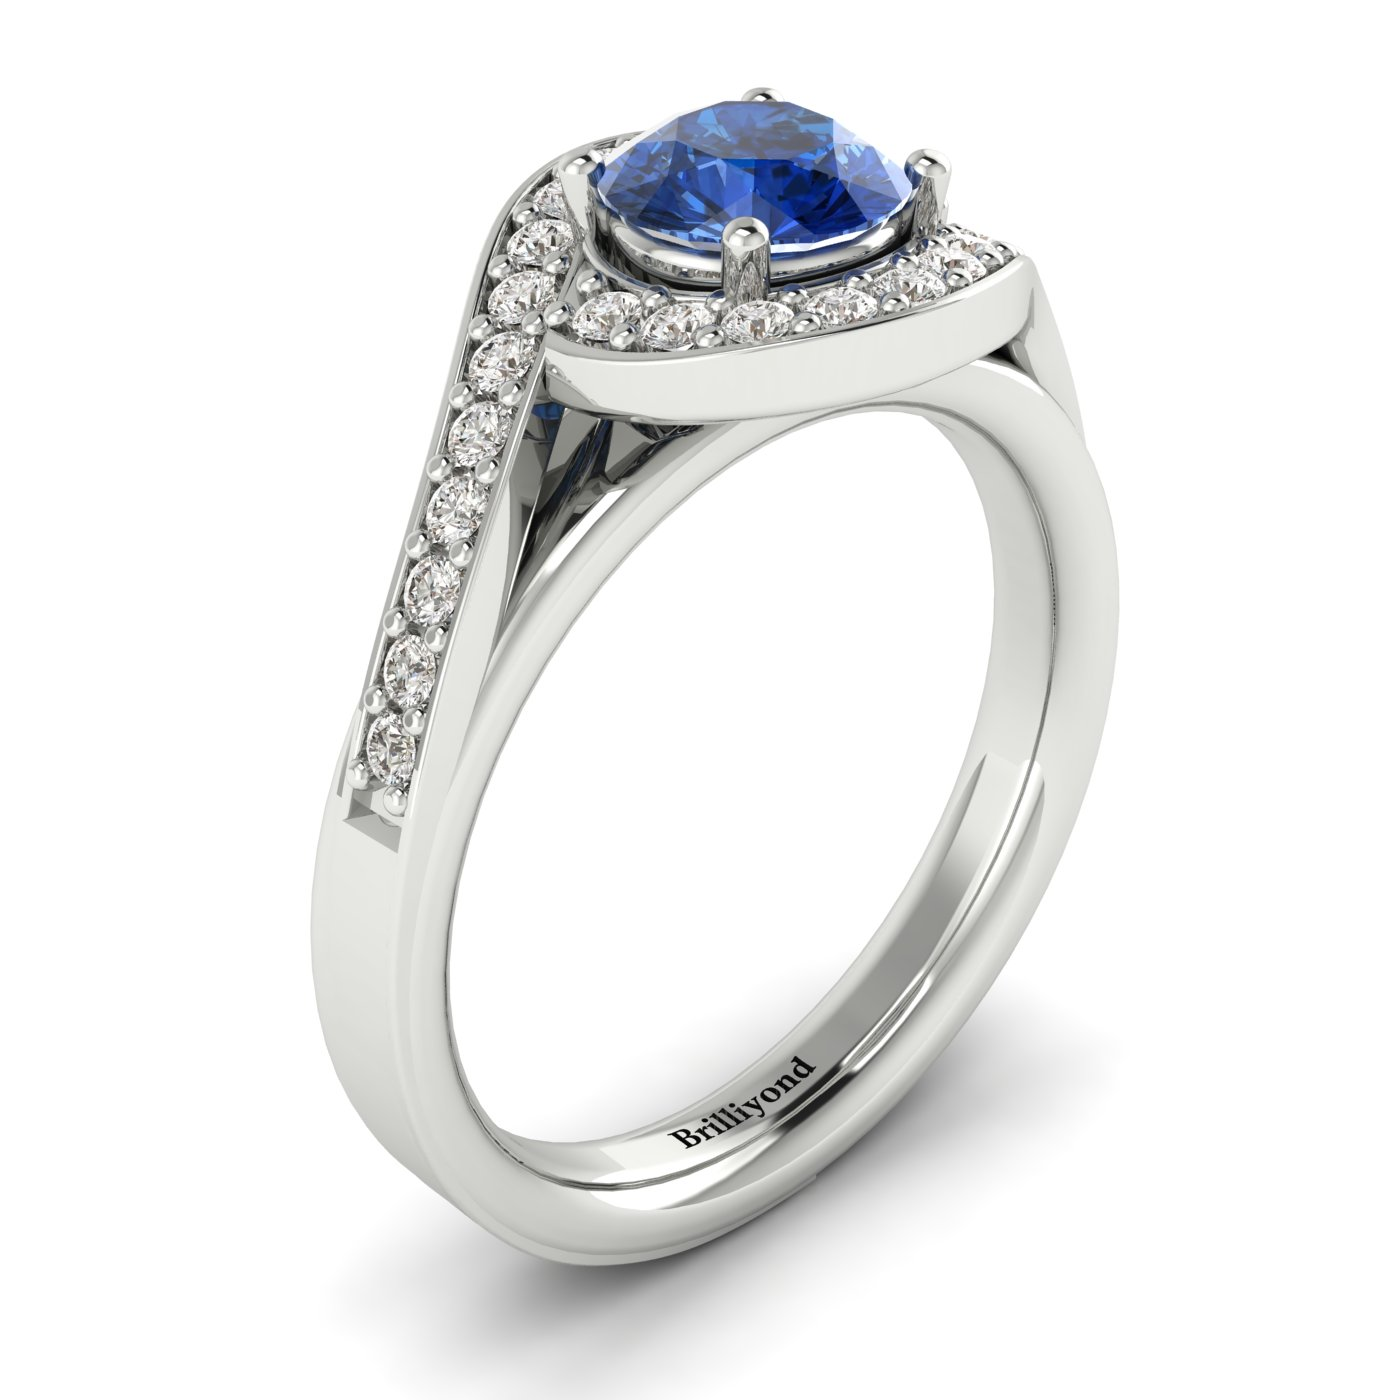 Side View of Blue Sapphire Halo Engagement Ring with GIA Certified Diamond Accents